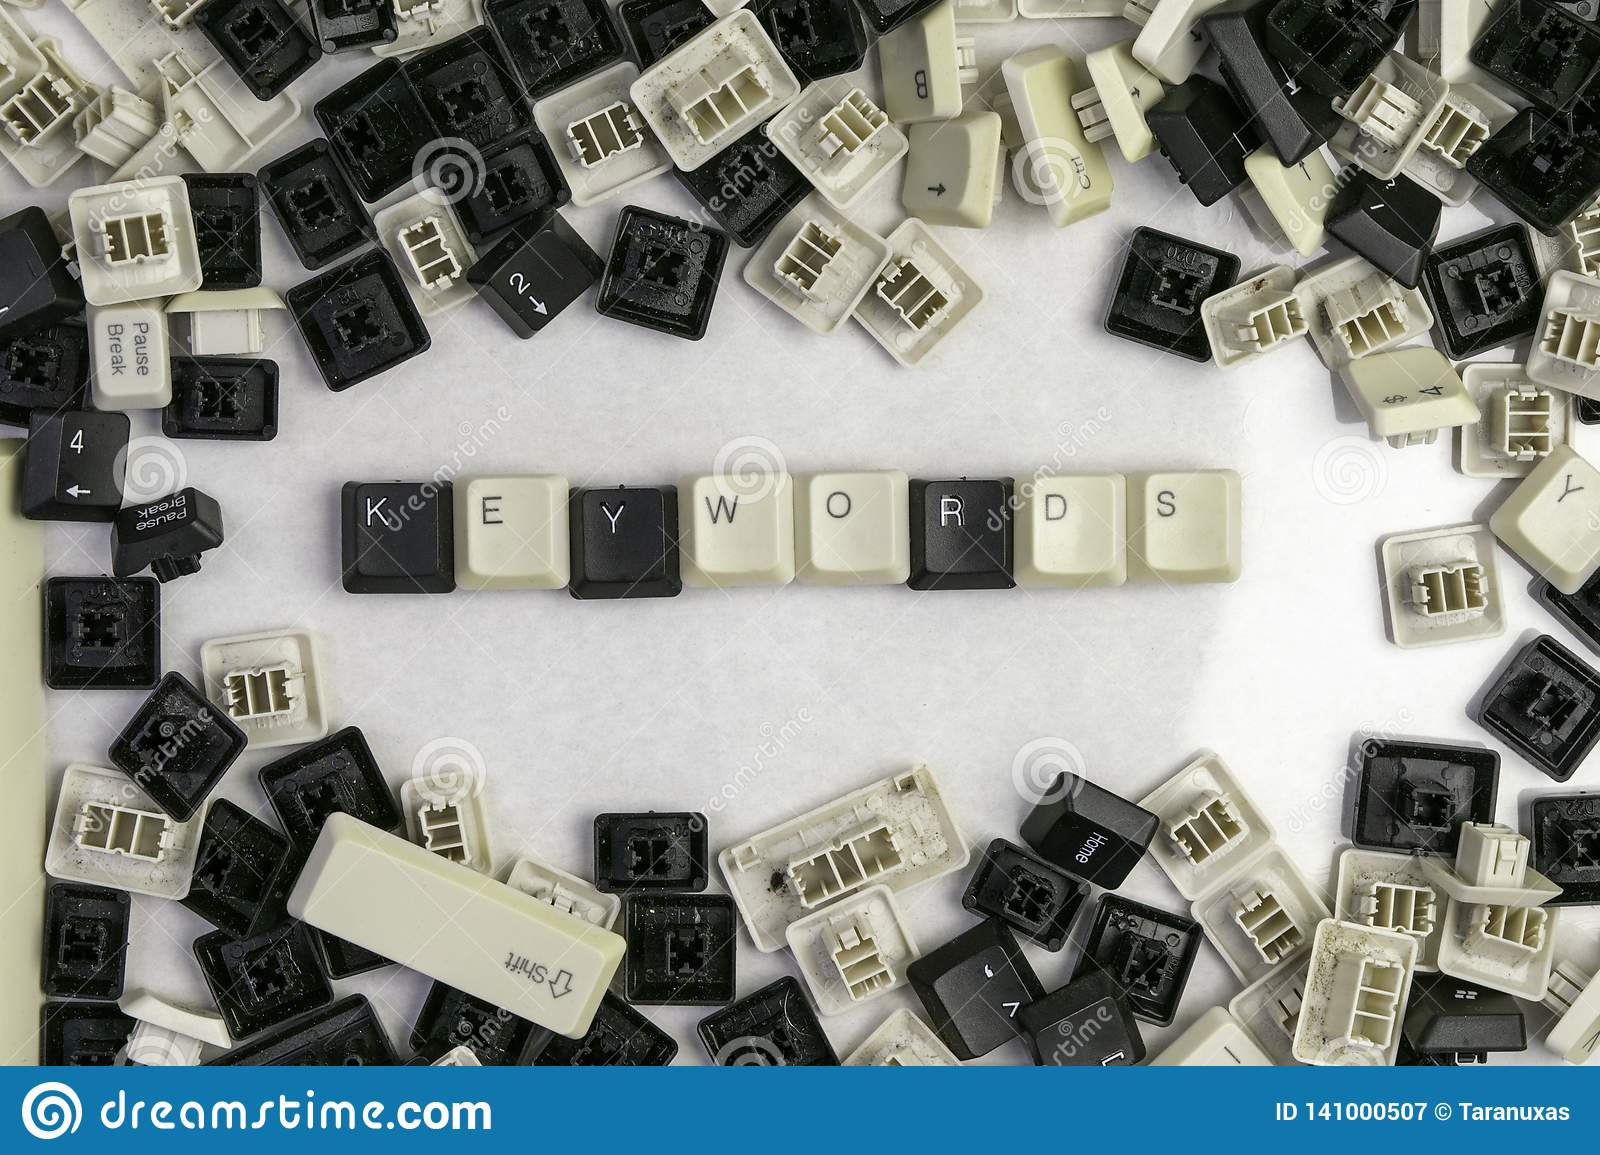 Keying works on microstocks, the word keywords folded from the keys of the old keyboard